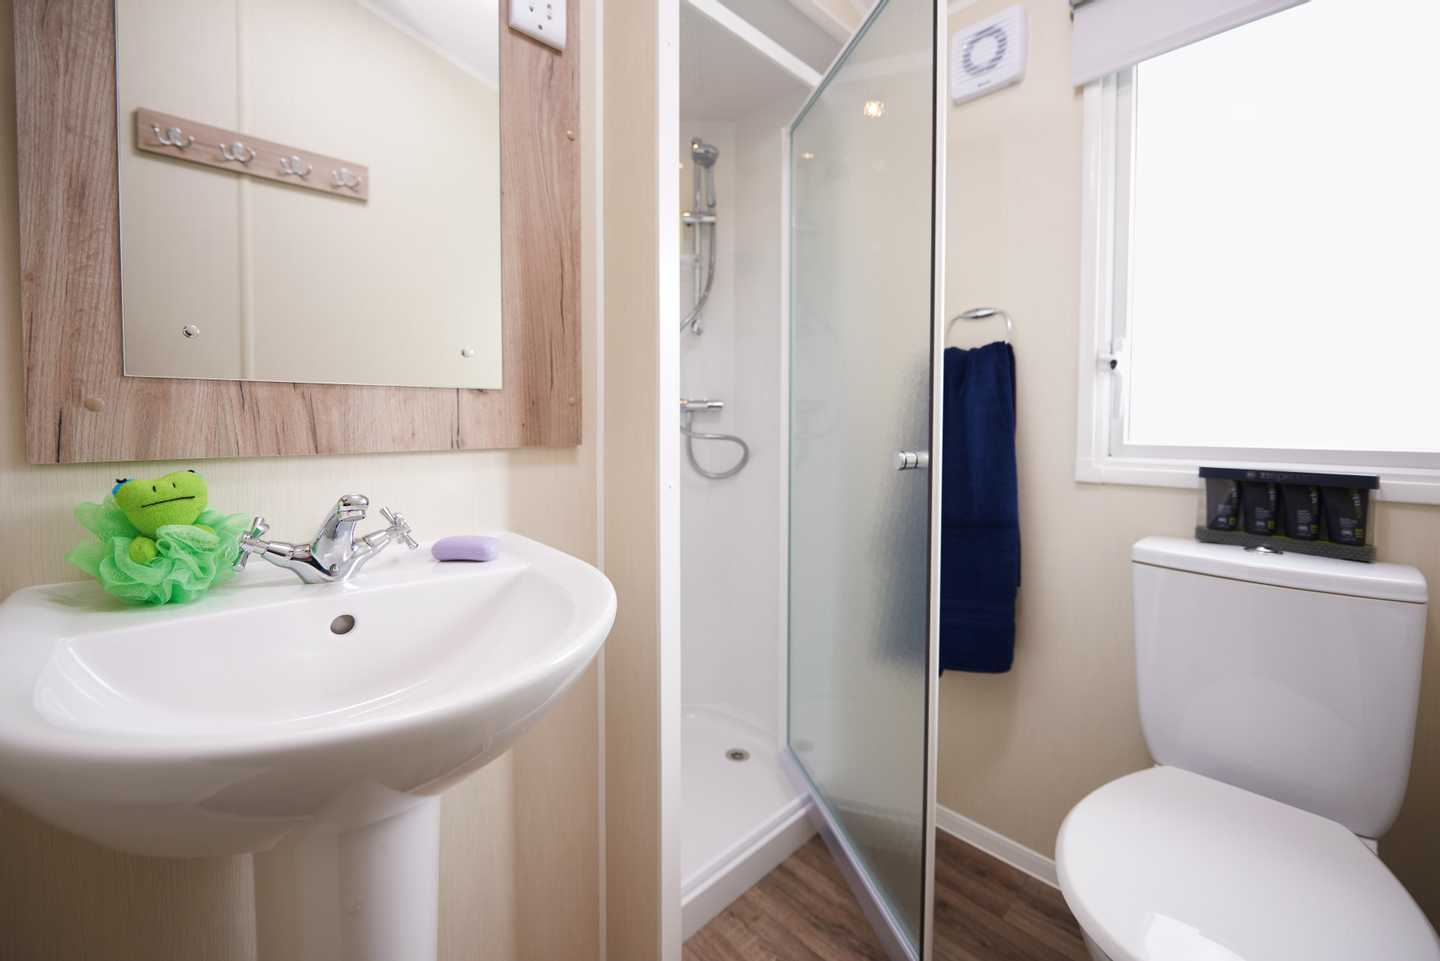 A Standard bathroom with a sink, shower and toilet